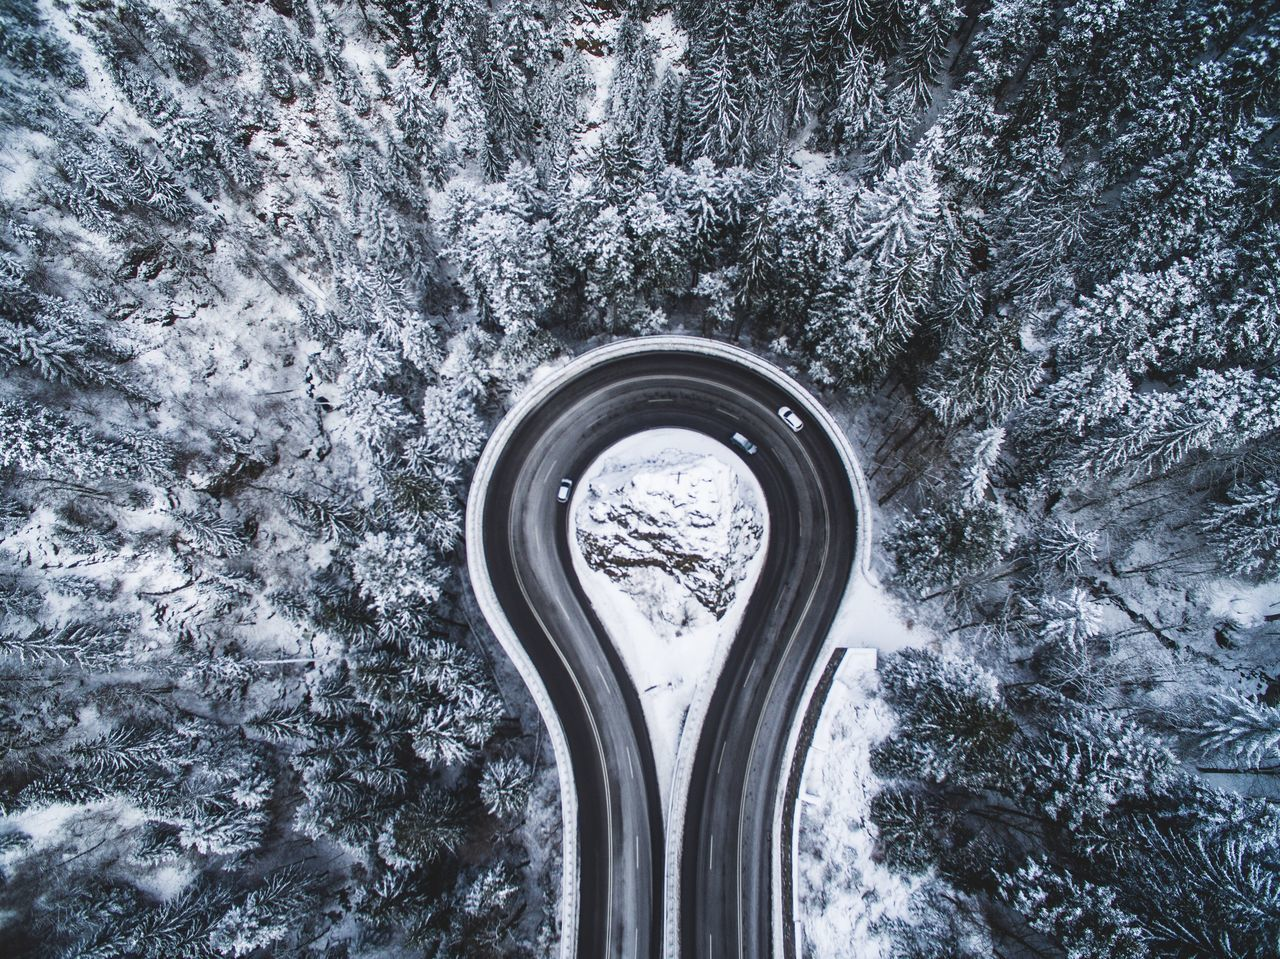 Areal Tree Nature Winter snow Road Pass Cars mountain